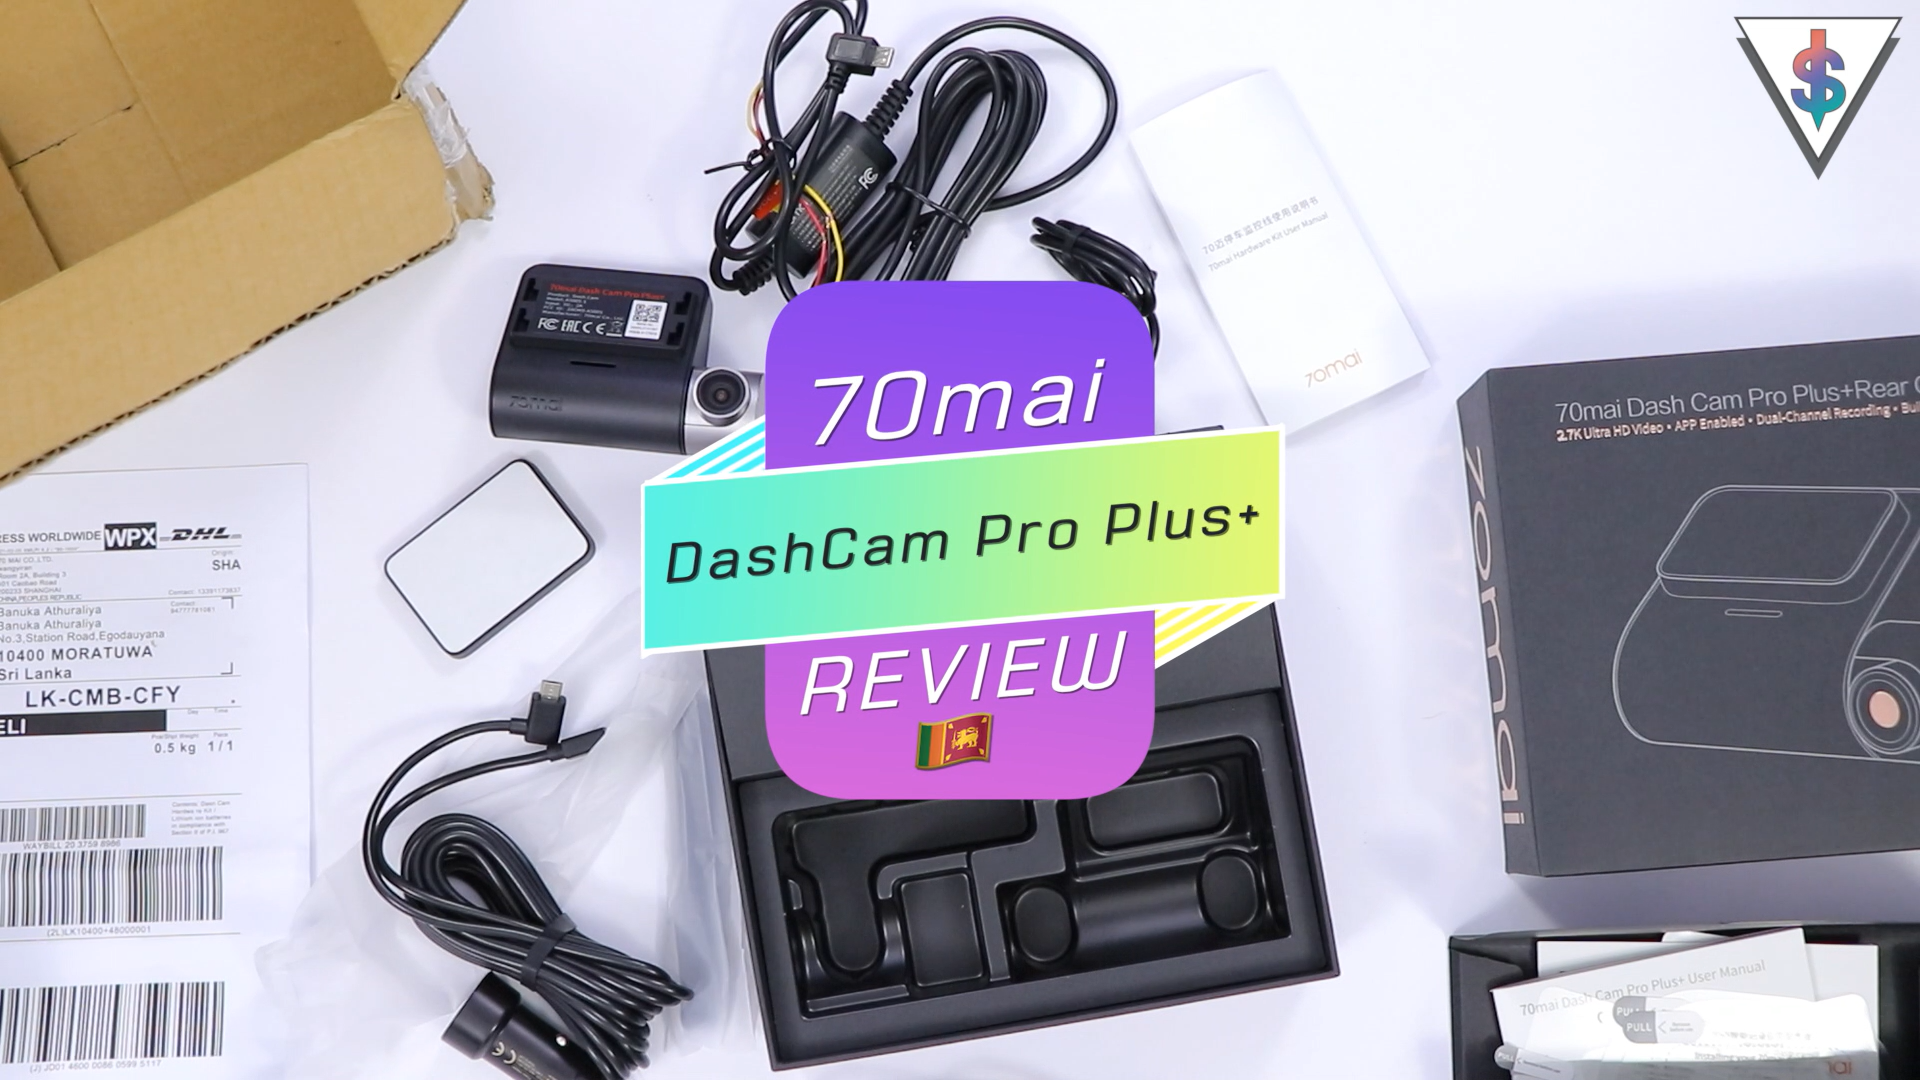 70mai Dash Cam Pro Review 0001 - Best Dashcam you can buy - 70mai Dash Cam Pro Plus+ Review after 6 months!